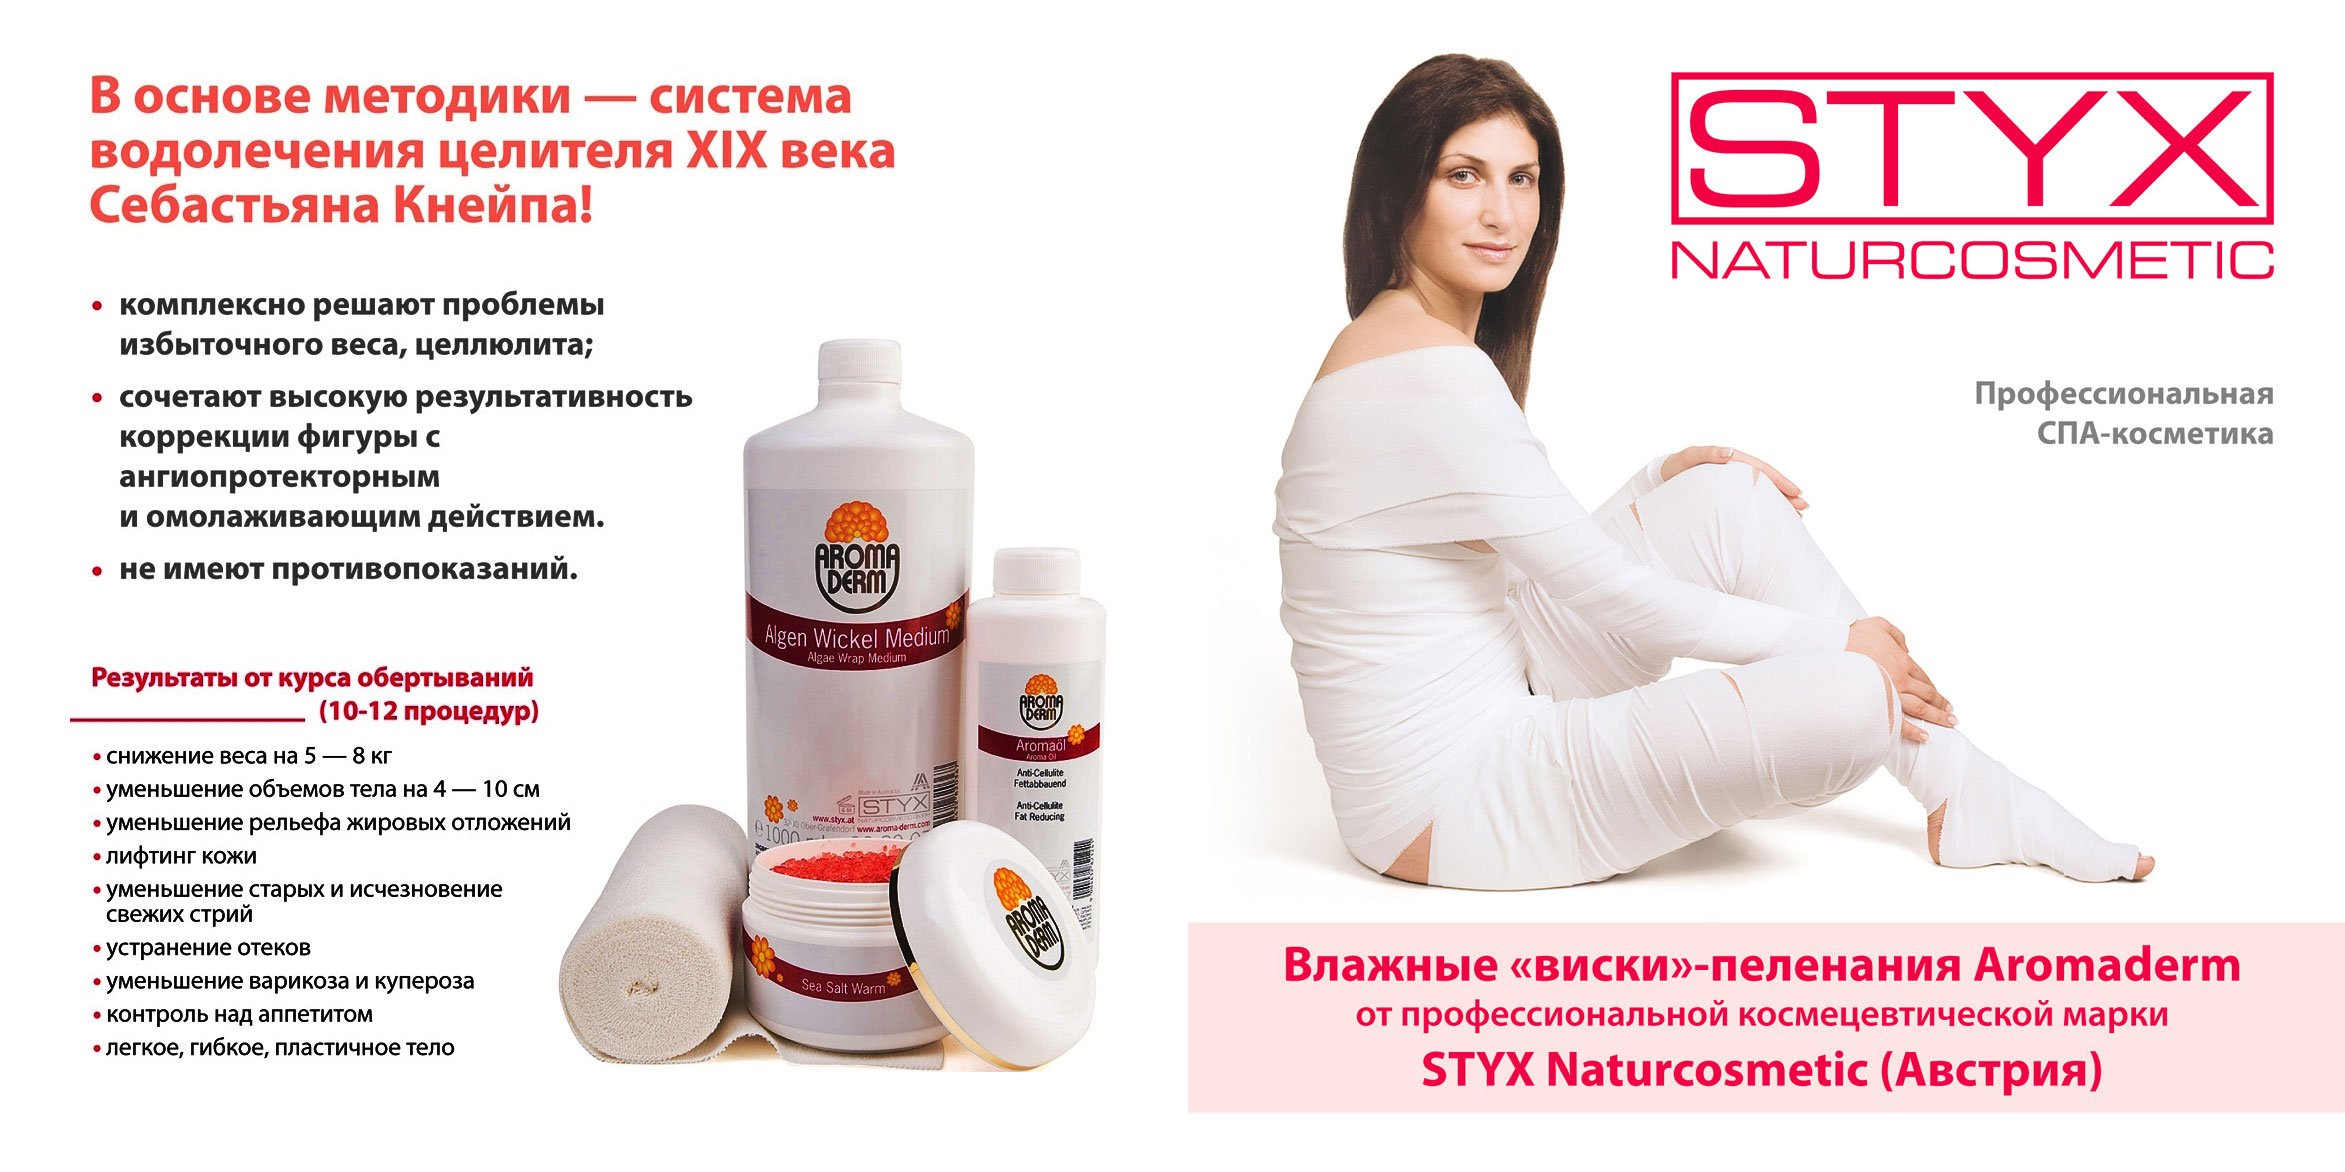 http://institut2d.ru/images/upload/styx_1.jpg